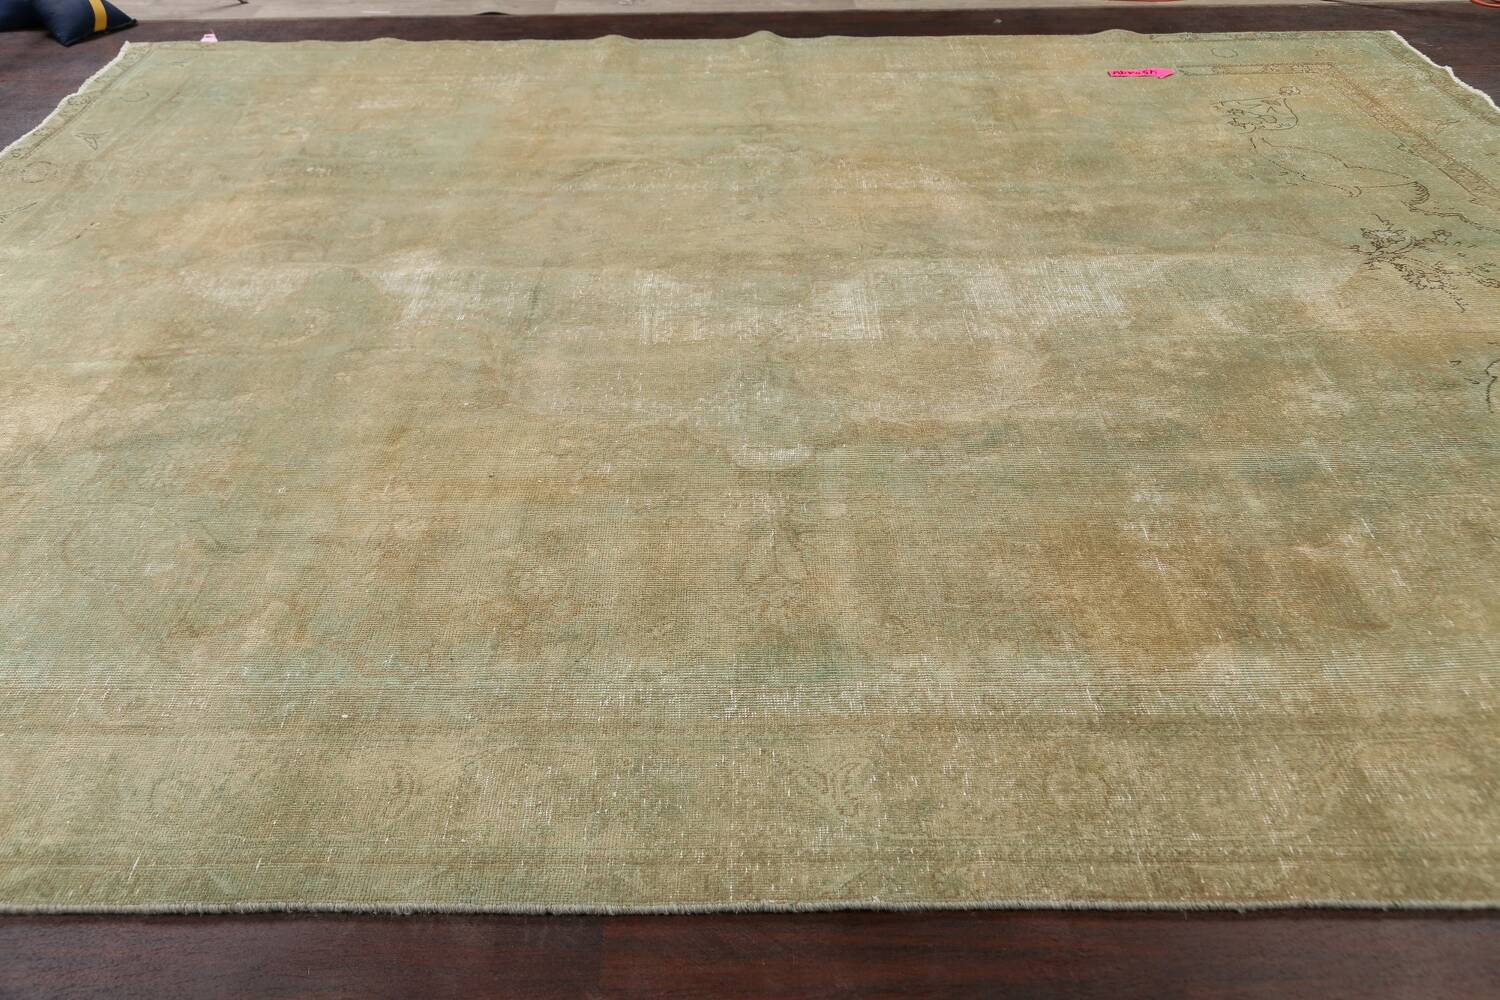 Antique Muted Floral Mashad Persian Area Rug 10x13 image 21